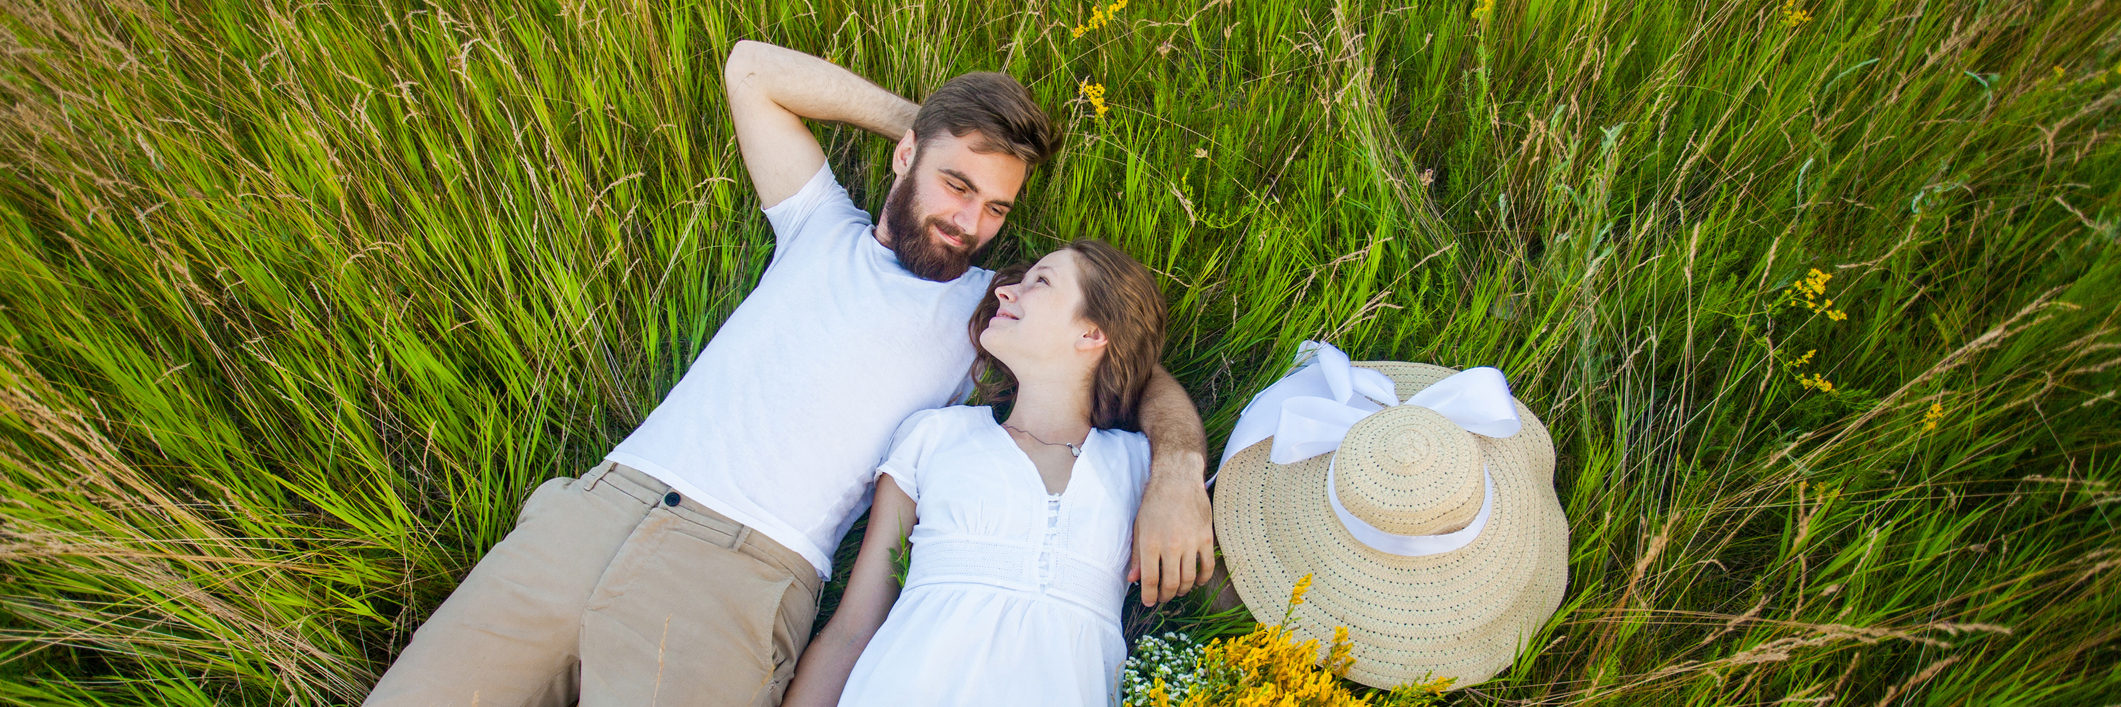 A young couple lays in the grass together.